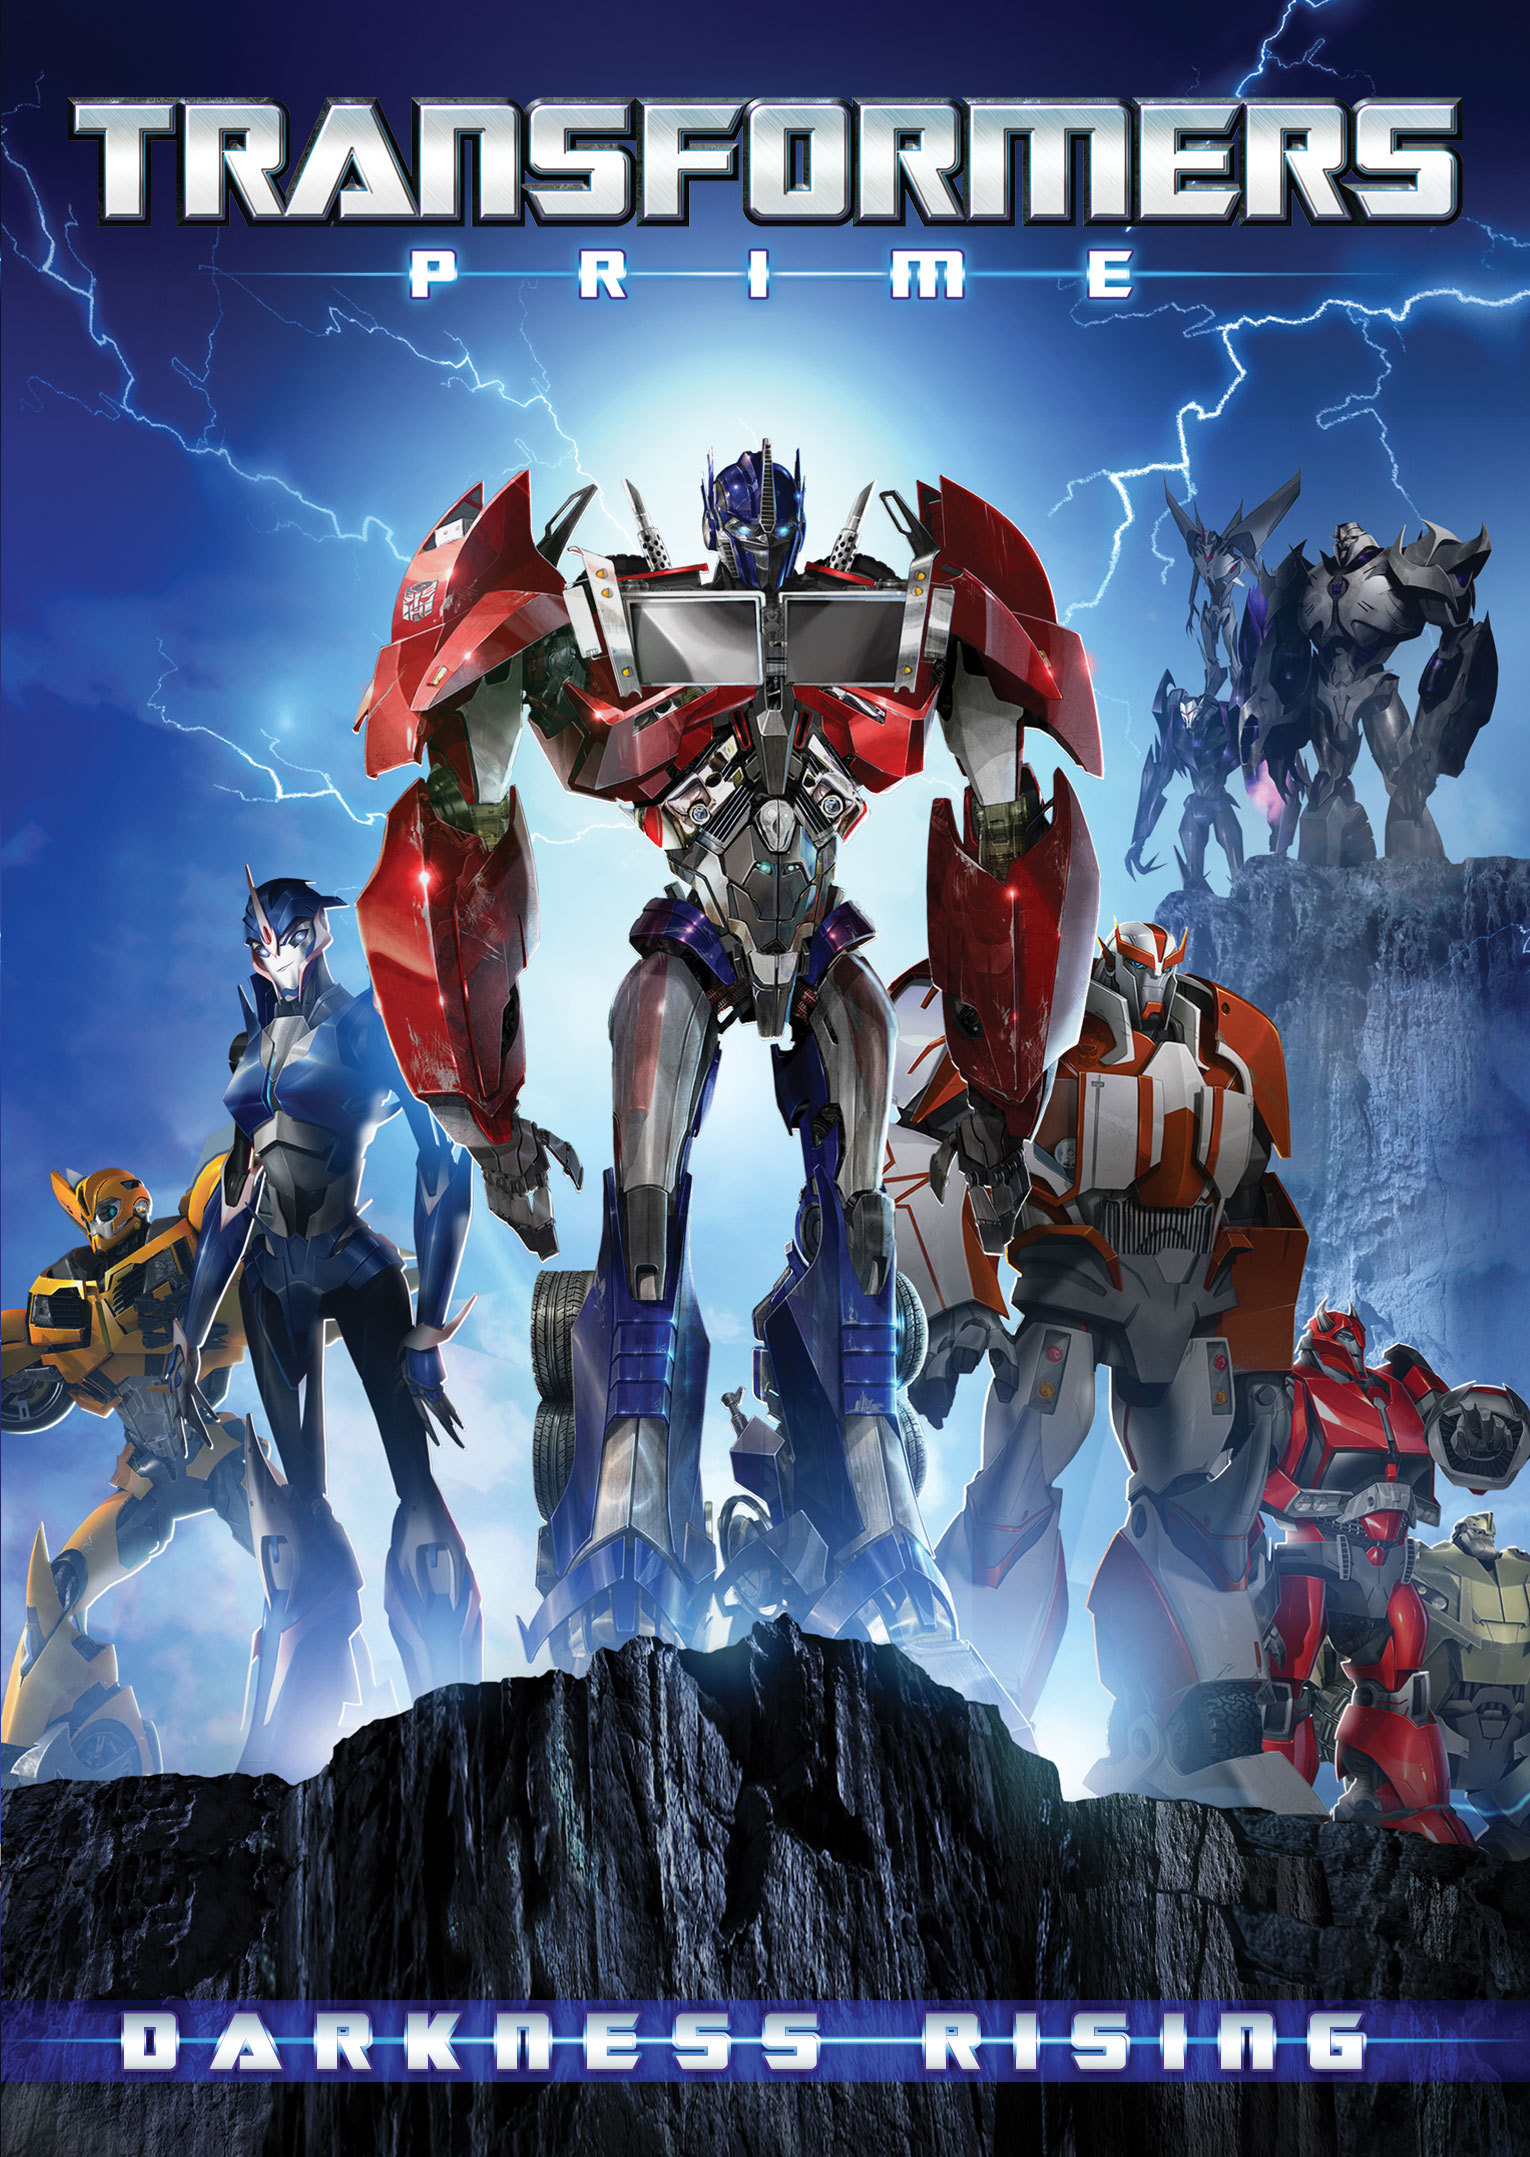 Transformers Pictures Photos Images - IGN